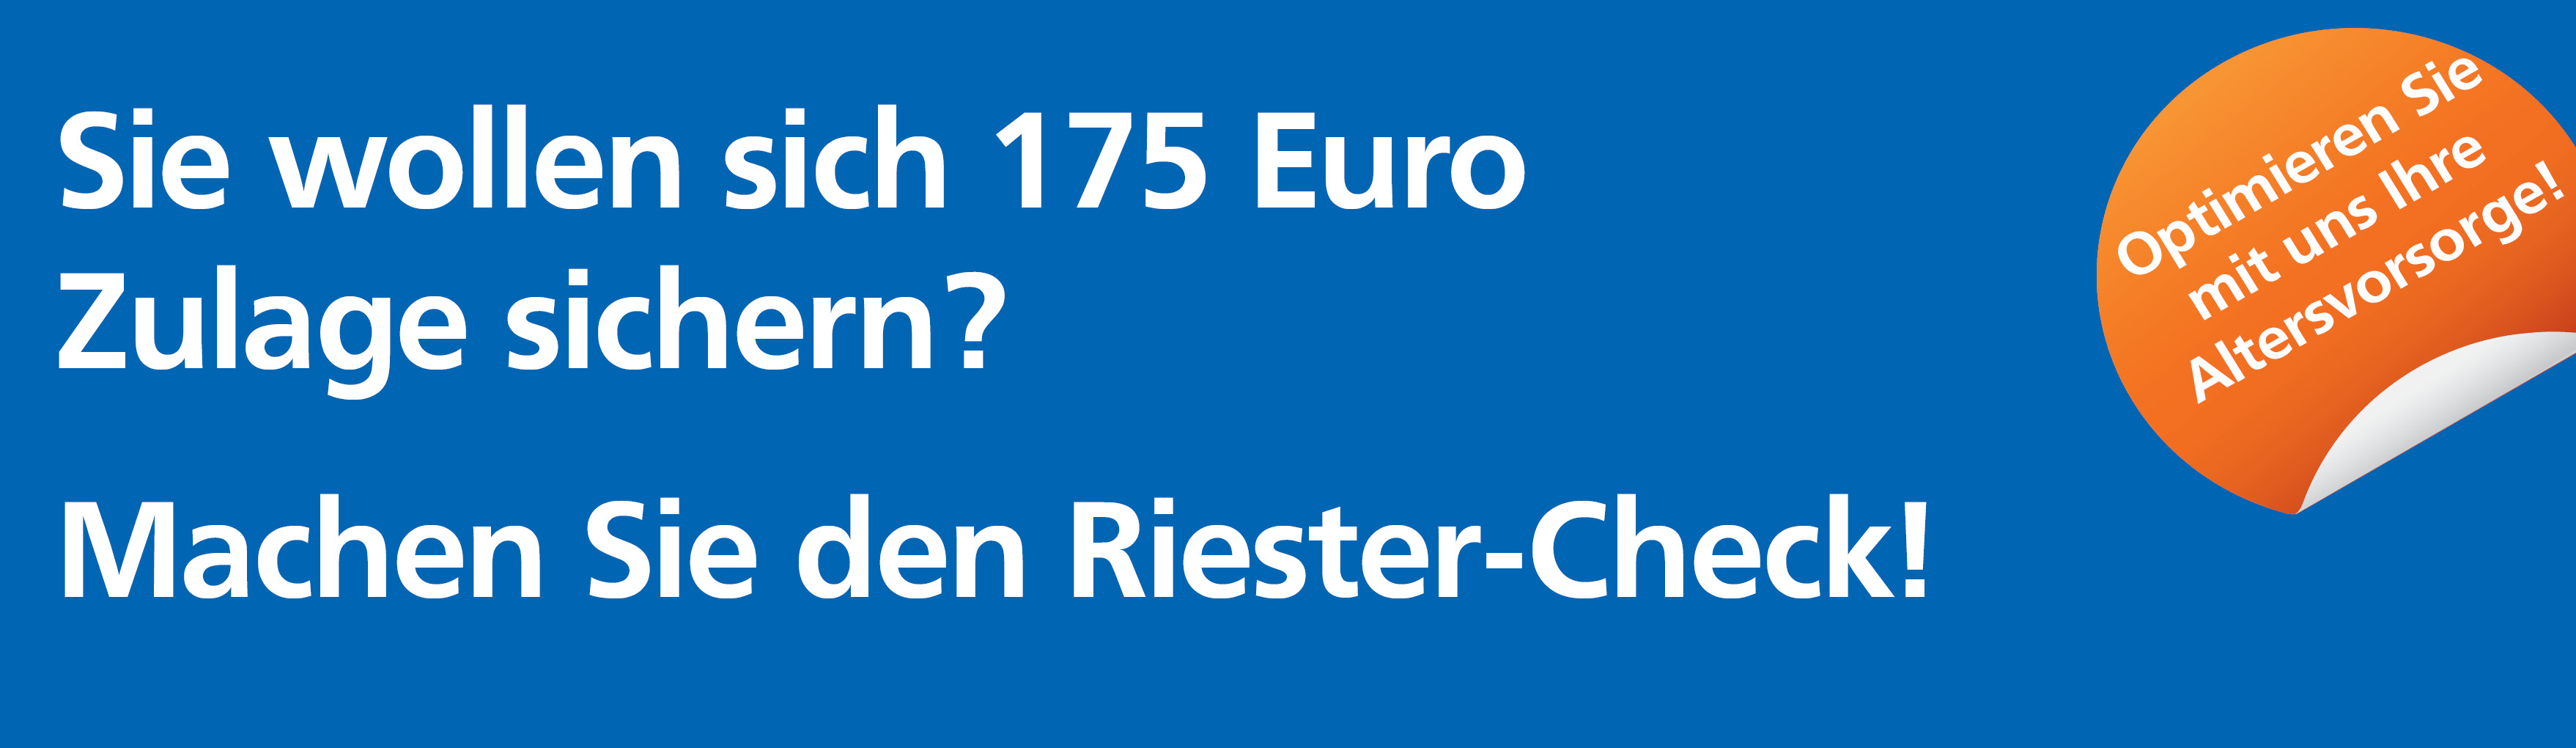 Riester-Check